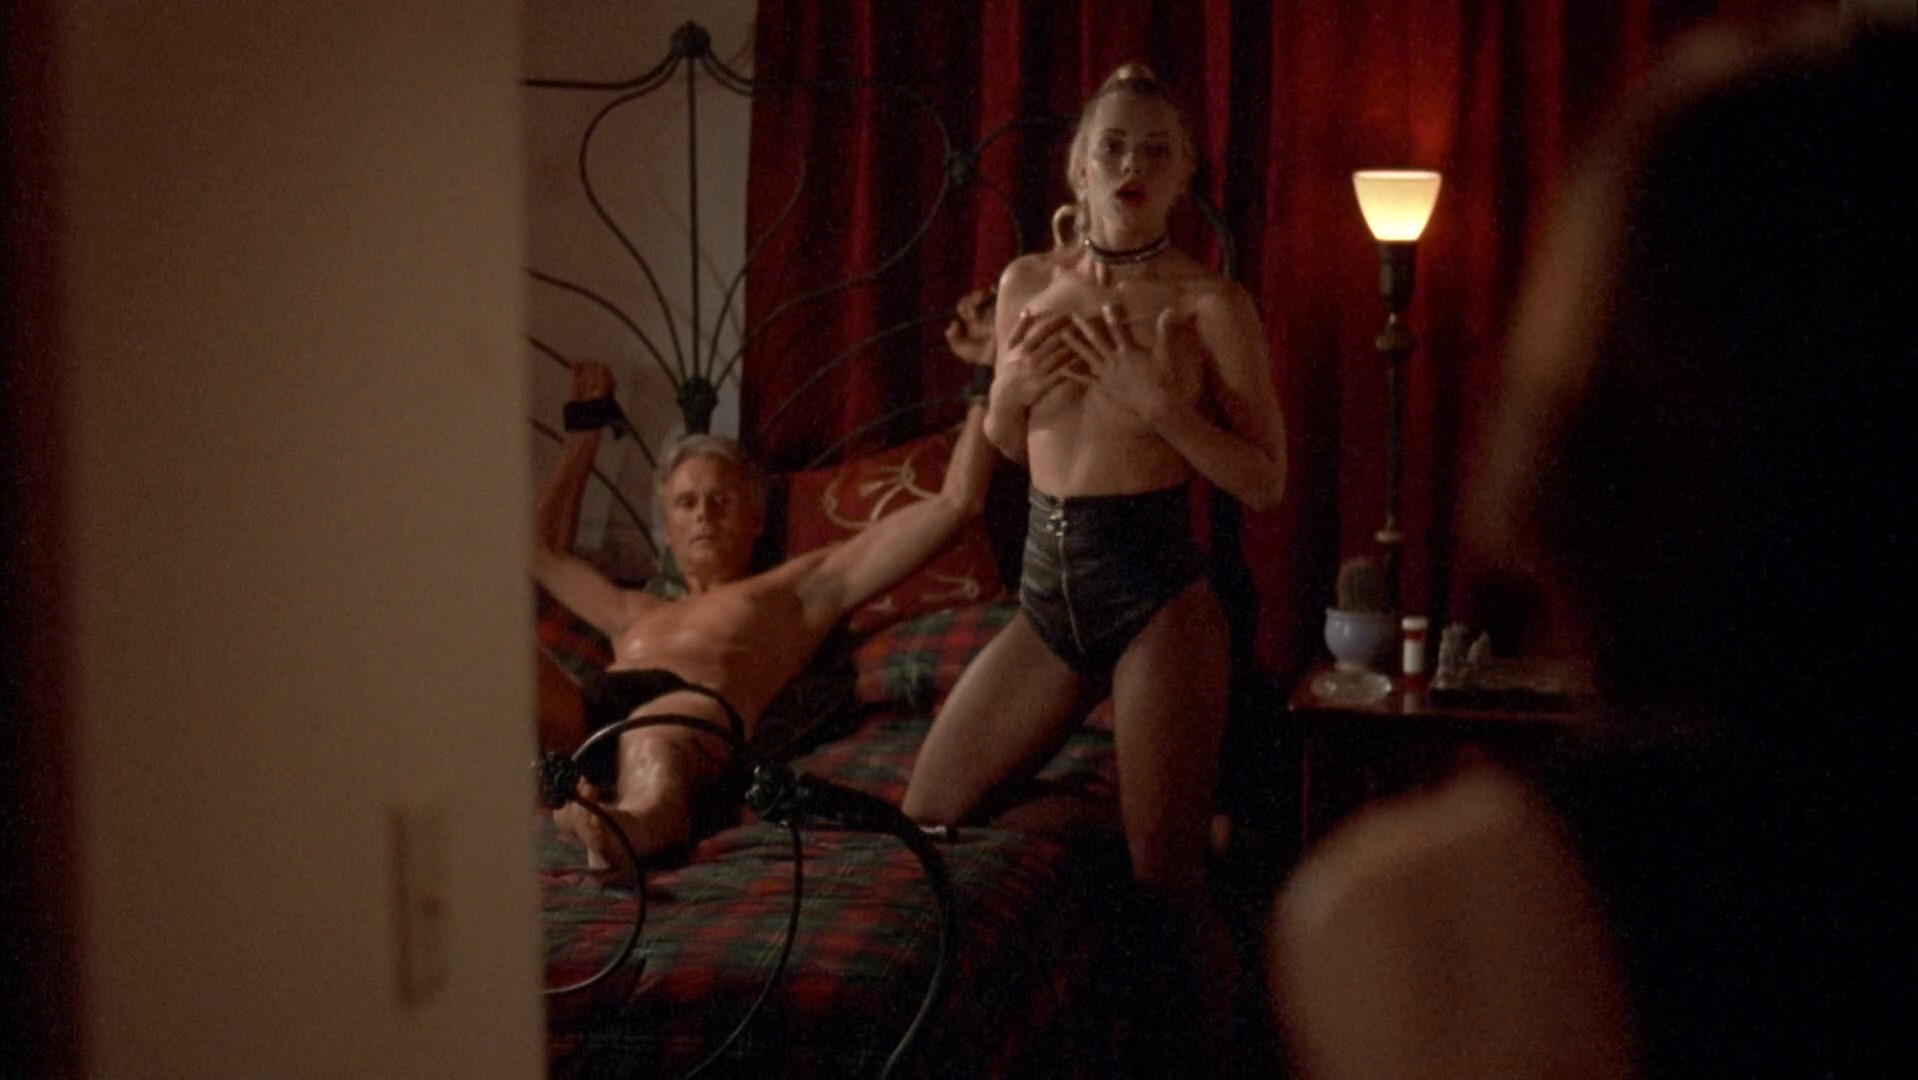 pictures Jaime pressly nude boobs sex poison ivy movie